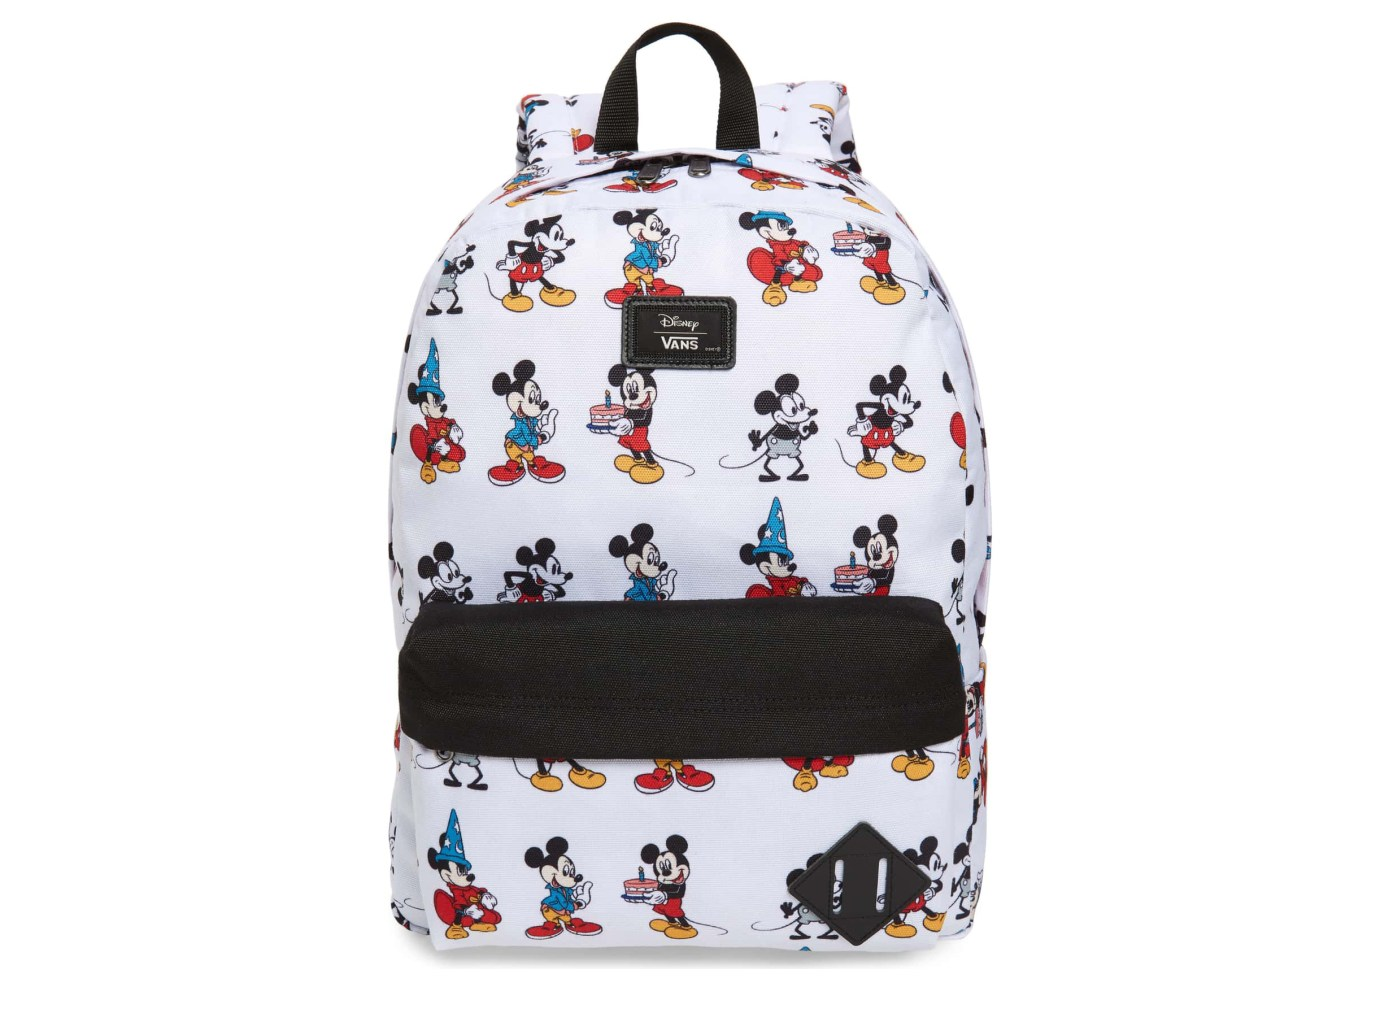 x Disney Mickey's 90th Anniversary - Mickey Through the Ages Backpack VANS